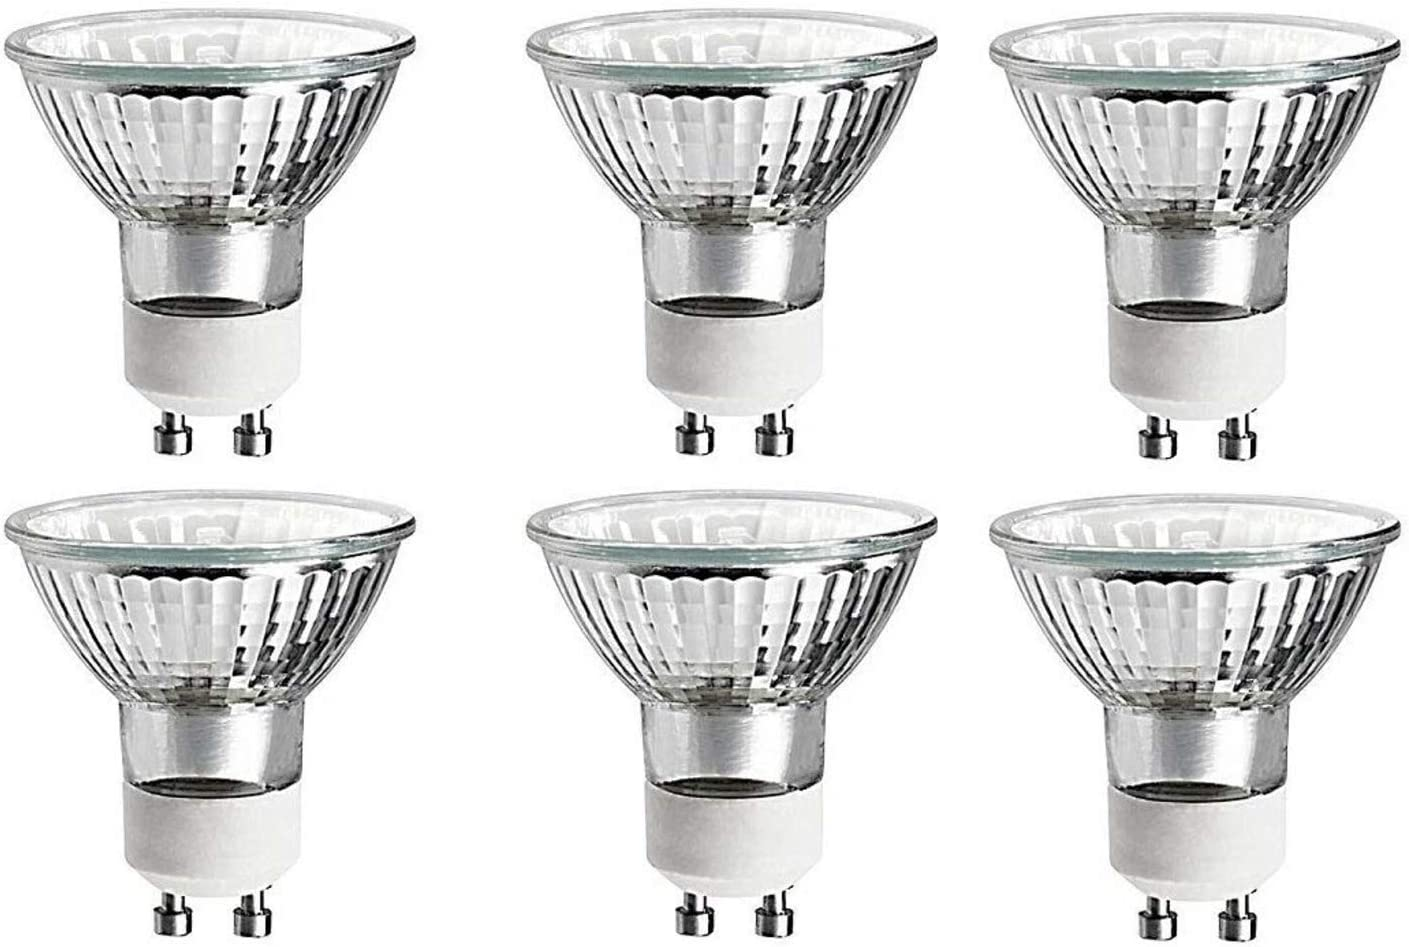 35 Watts Halogen Light Bulb MR16 GU10 Base 35w 120v Reflector Flood Lights for Track Lighting Bulbs and Recessed Cans Spotlights with UV Filter Cover 35MR16/GU10/FL Pack Of 6